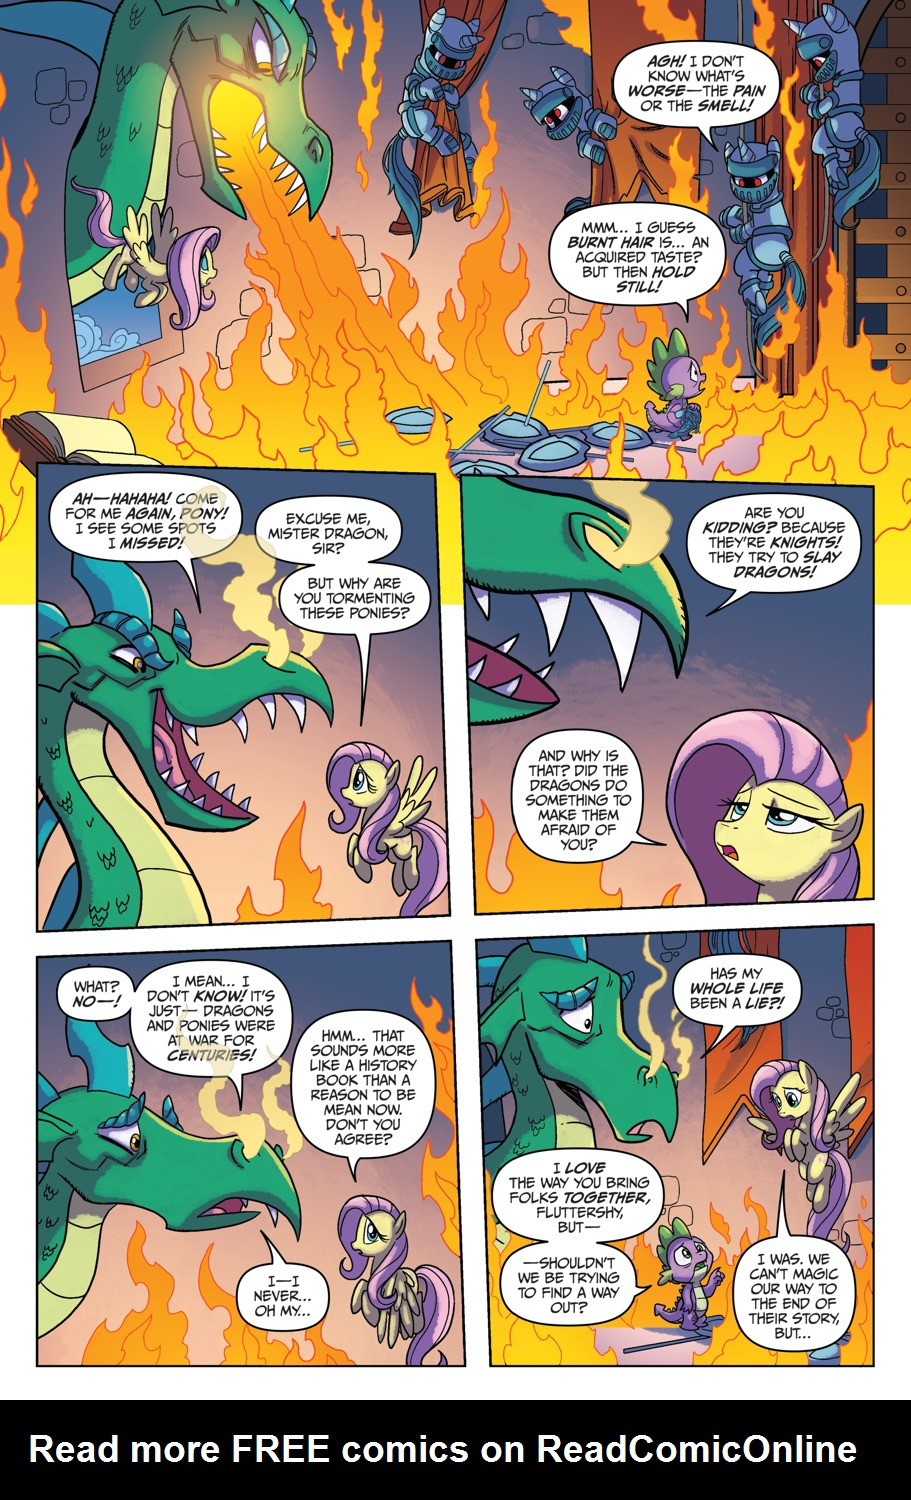 Read online My Little Pony: Friendship is Magic comic -  Issue #53 - 13